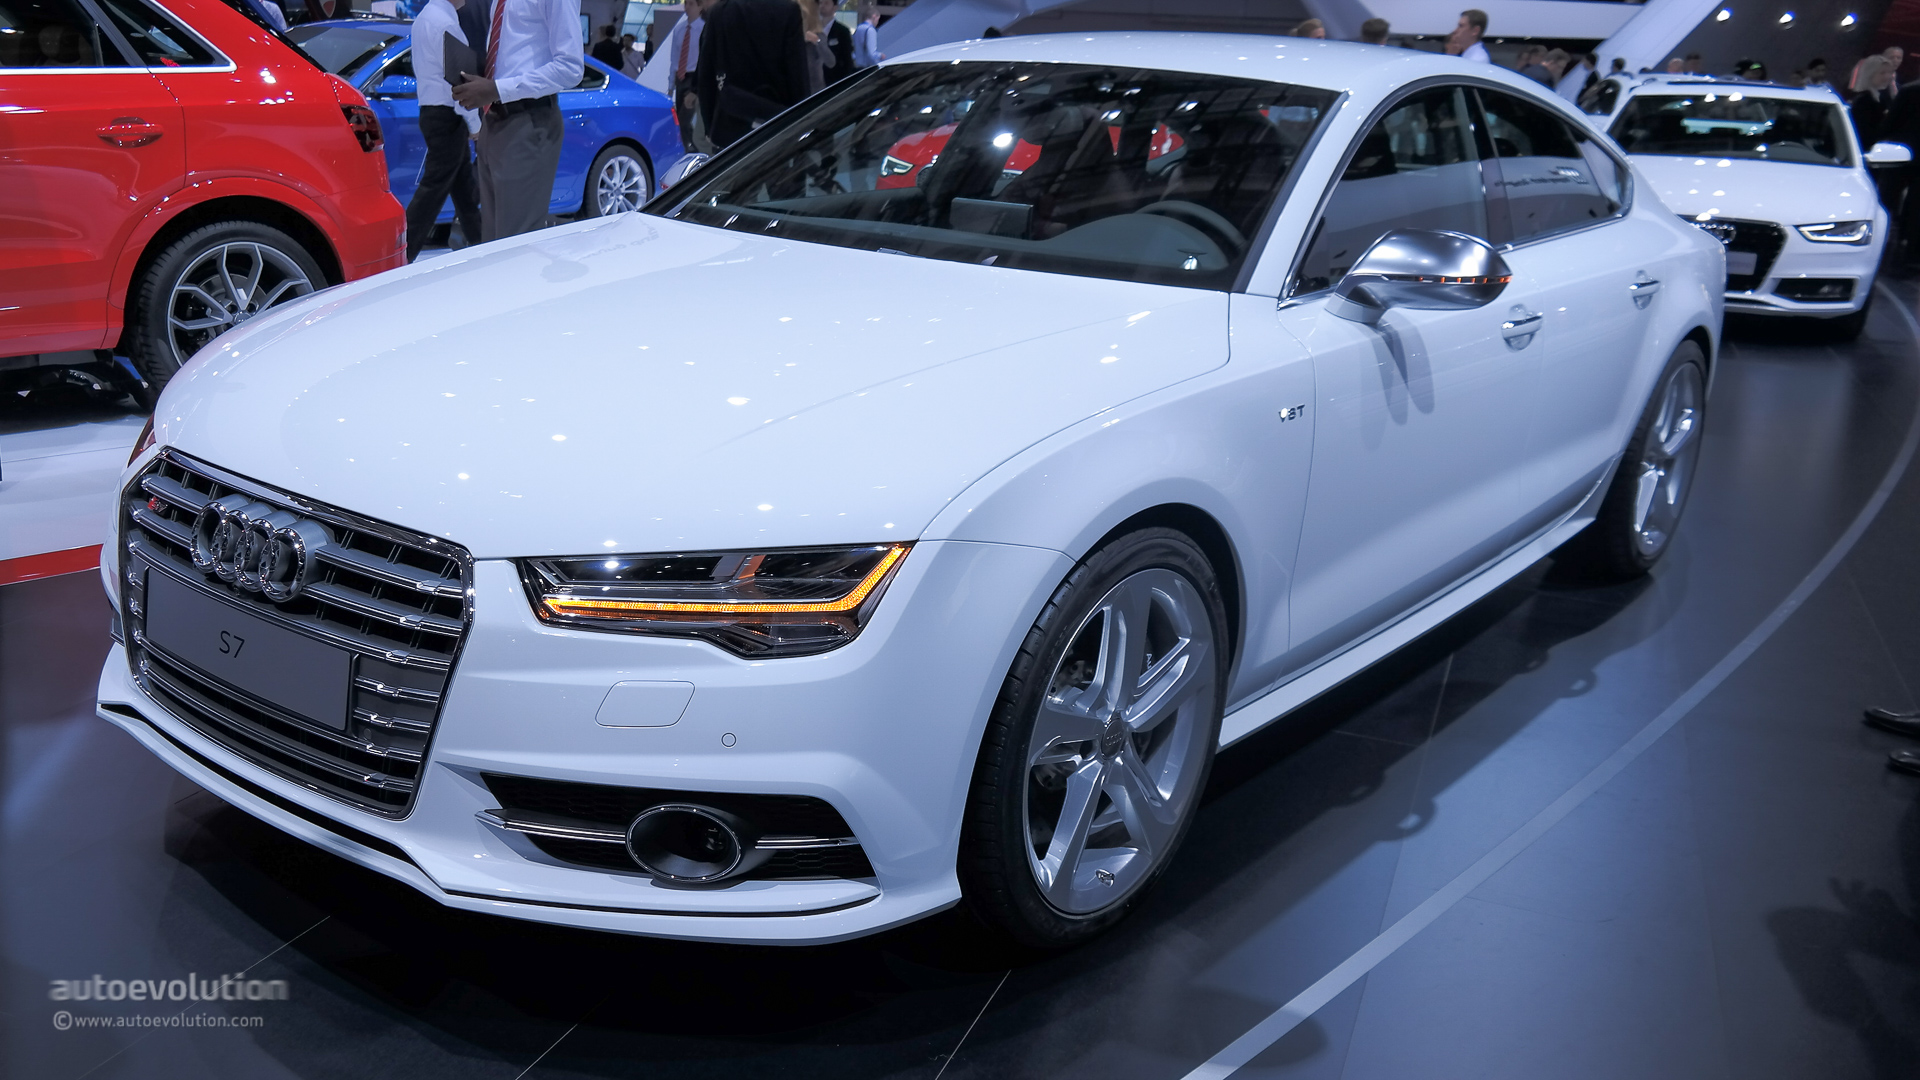 2015 audi s7 facelift bows at paris for the first time. Black Bedroom Furniture Sets. Home Design Ideas